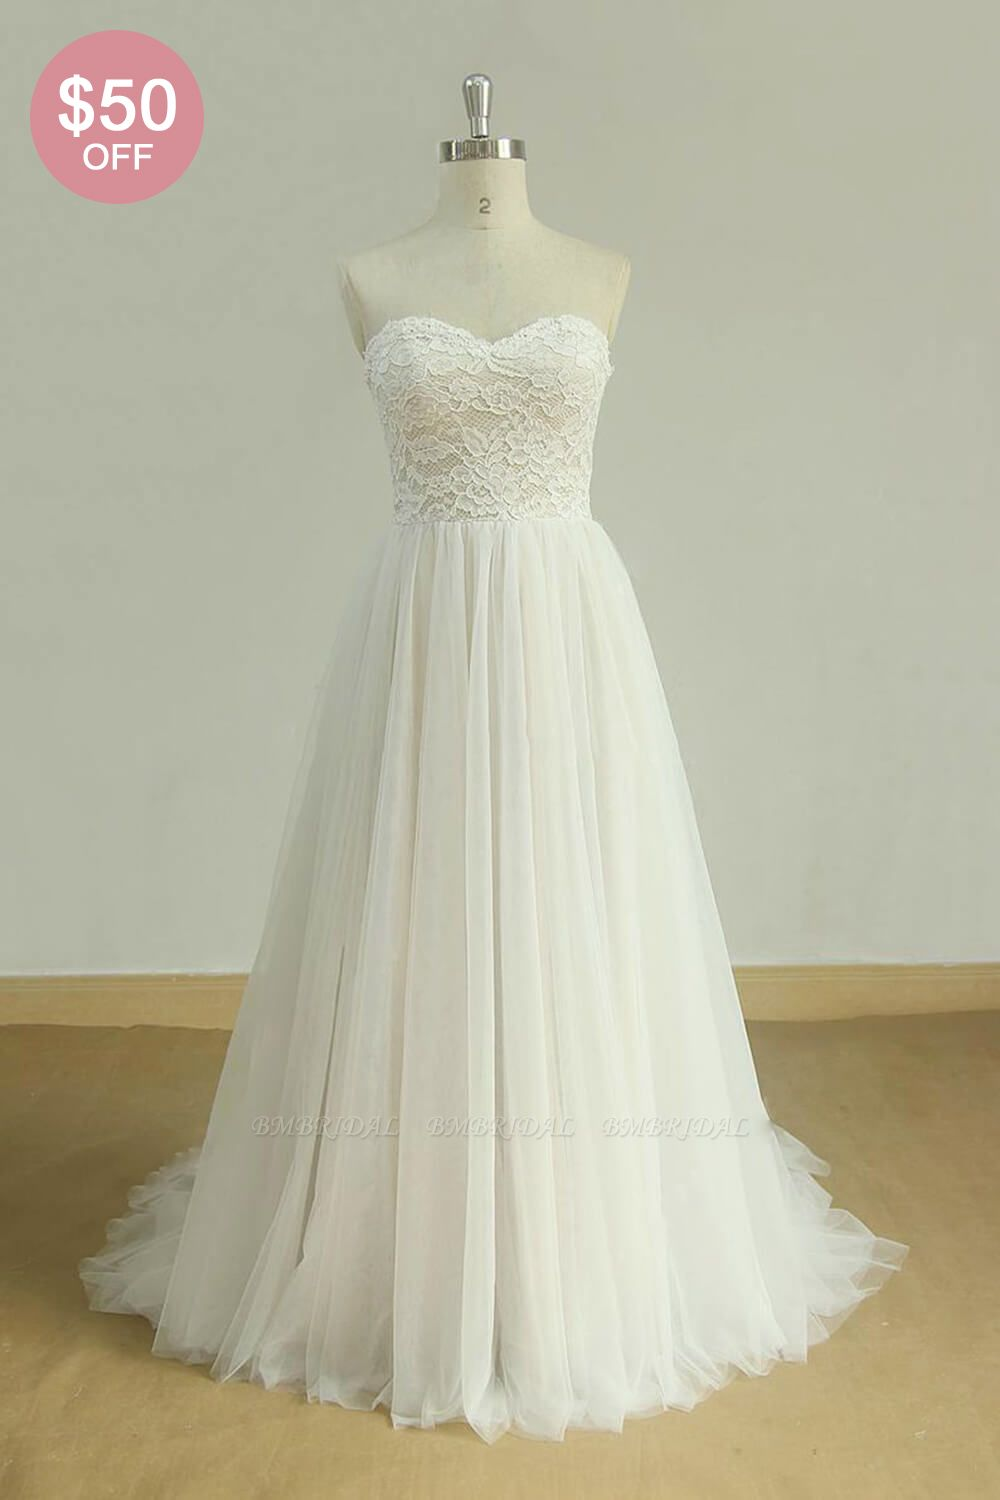 BMbridal Chic Sweetheart Lace Wedding Dress White Tulle Ruffles Bridal Gowns On Sale